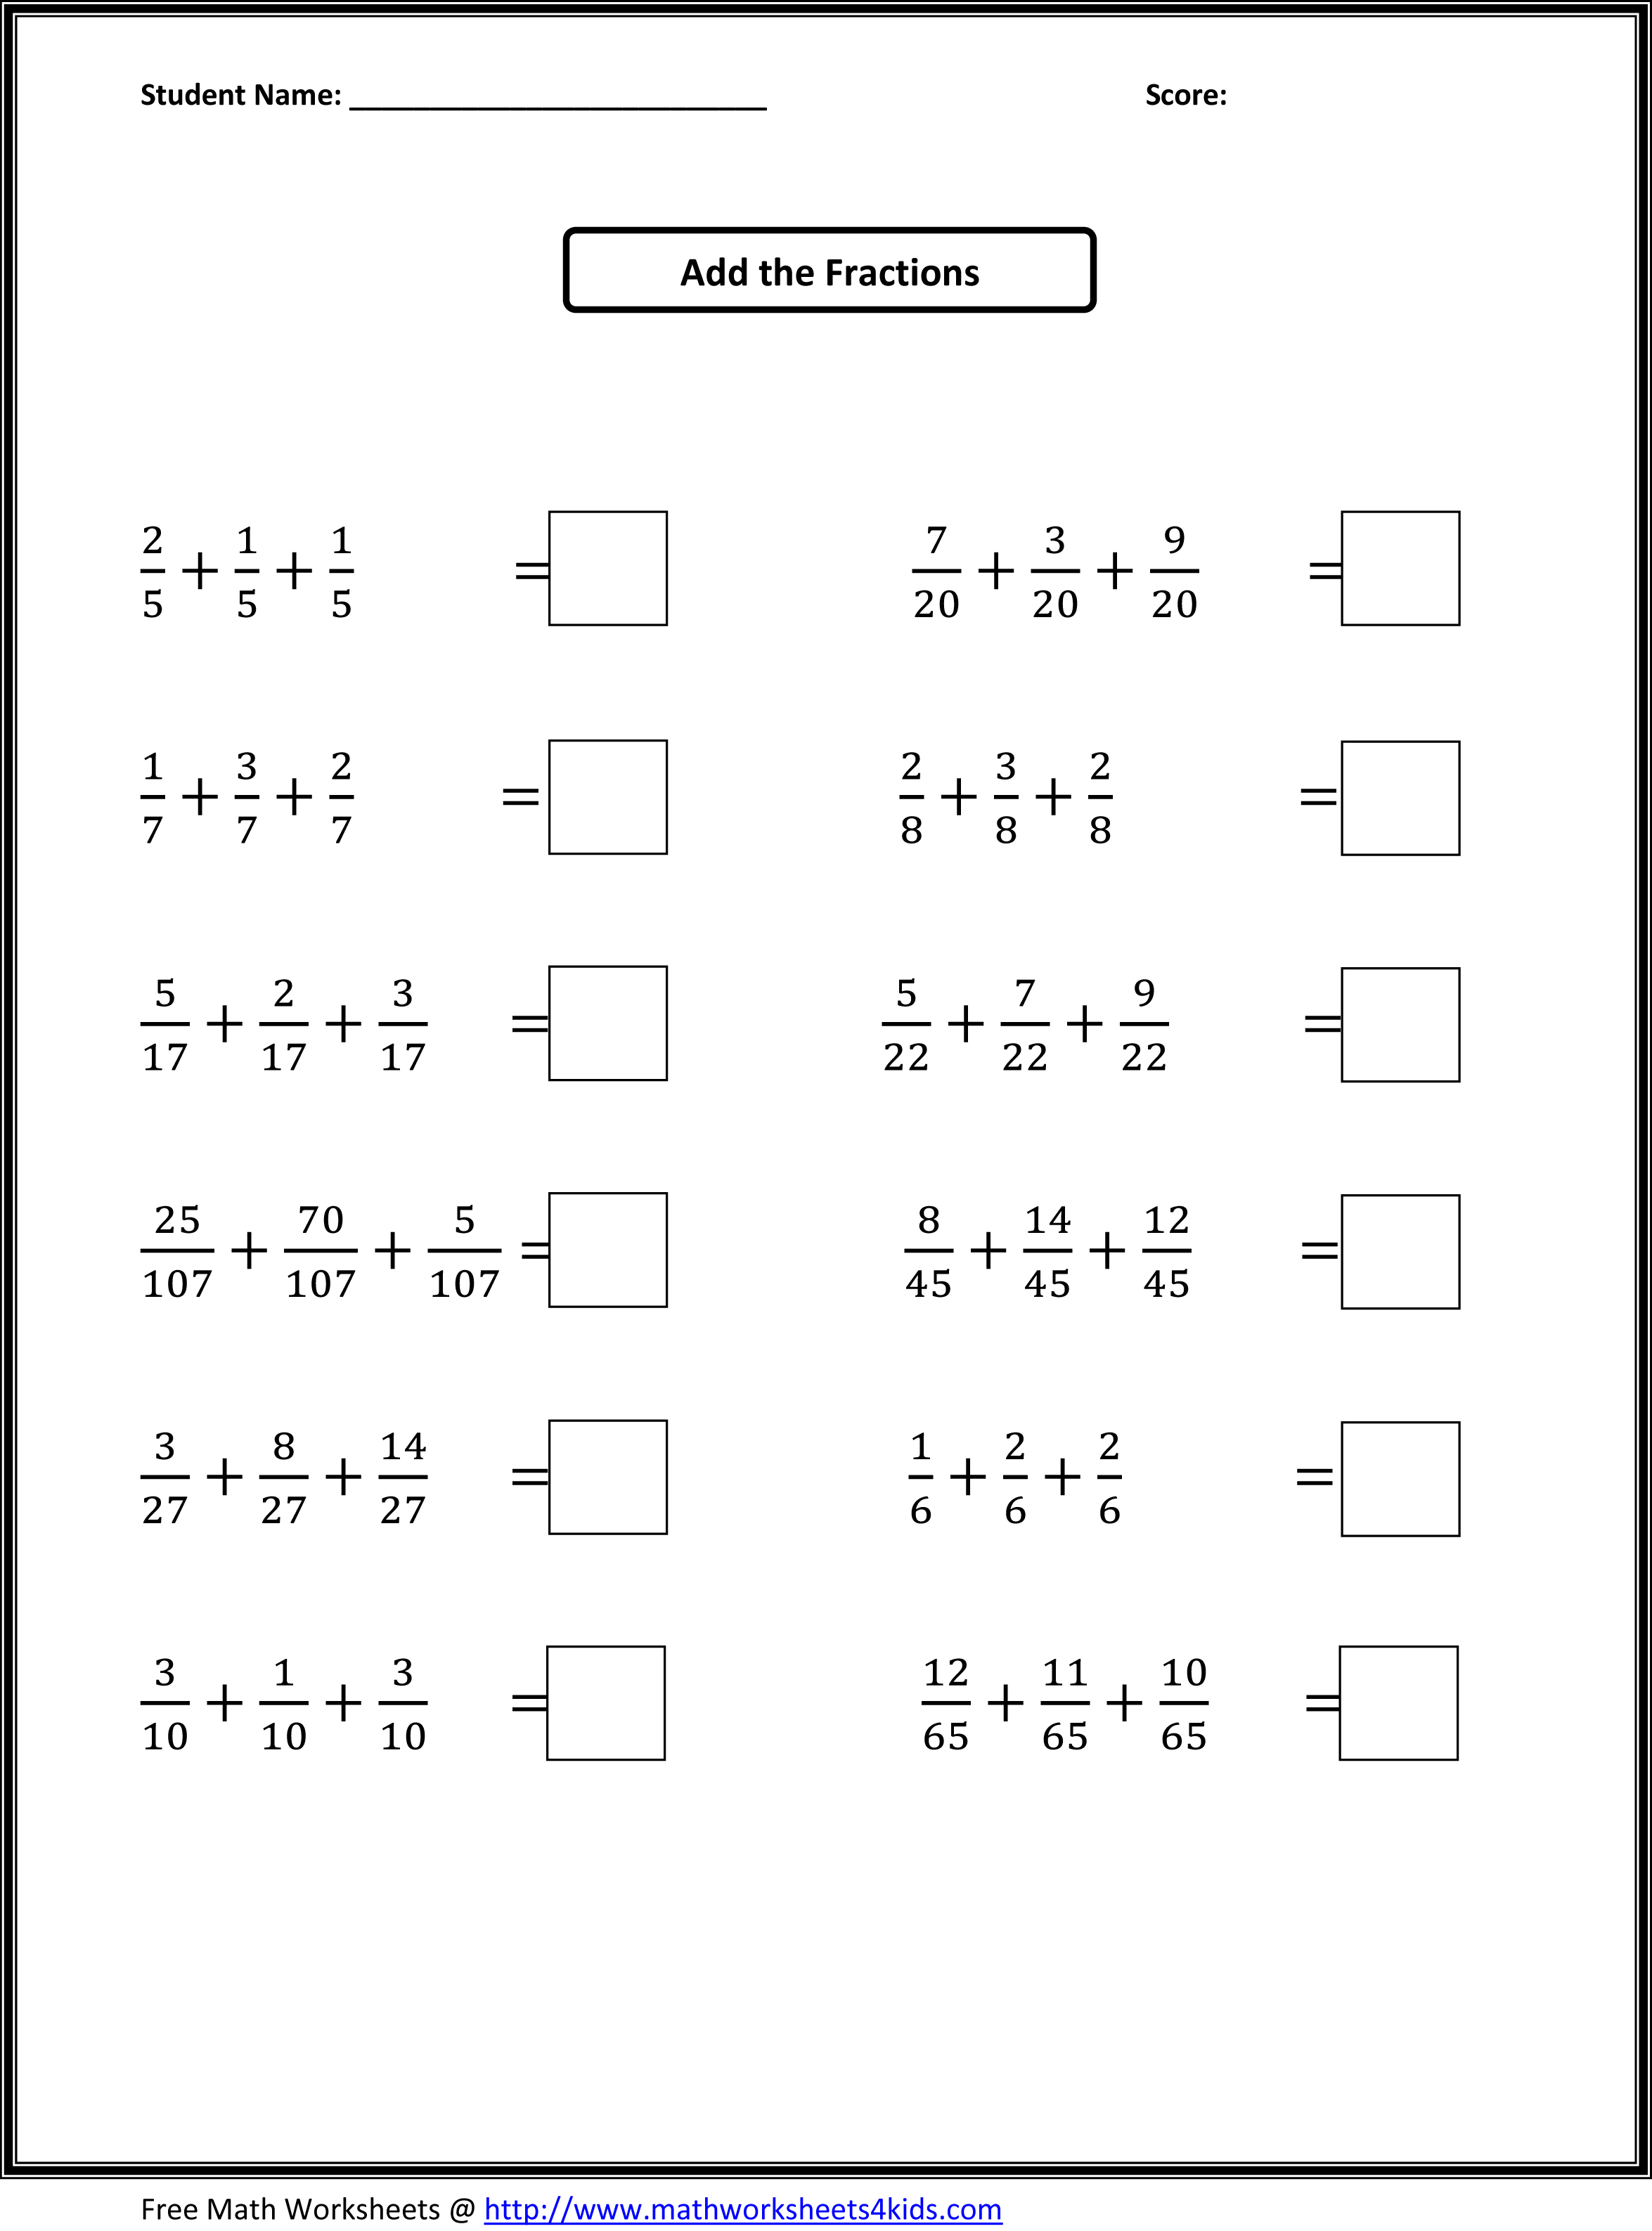 essays on math essays on emotions essays on emotions headsome – Fractions Worksheets for Grade 5